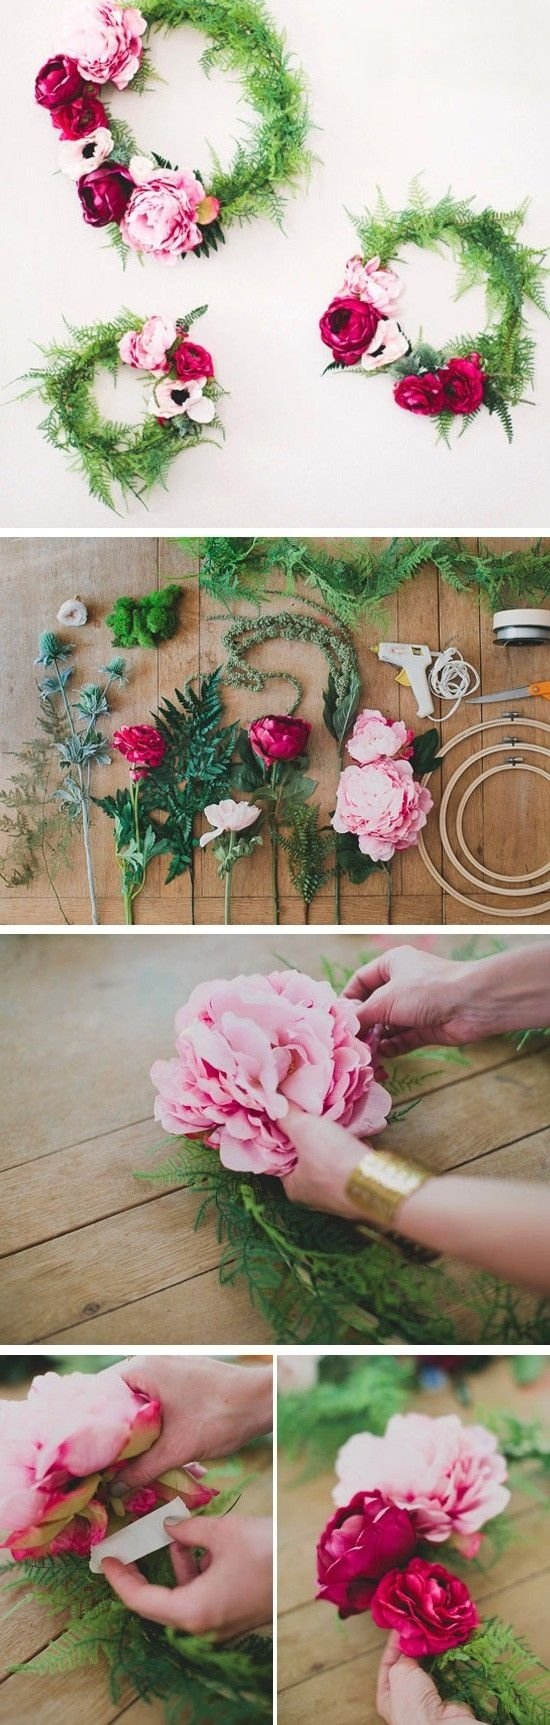 10 Fabulous Spring Wedding Ideas On A Budget fascinating diy spring wedding ideas on a budget for trend and